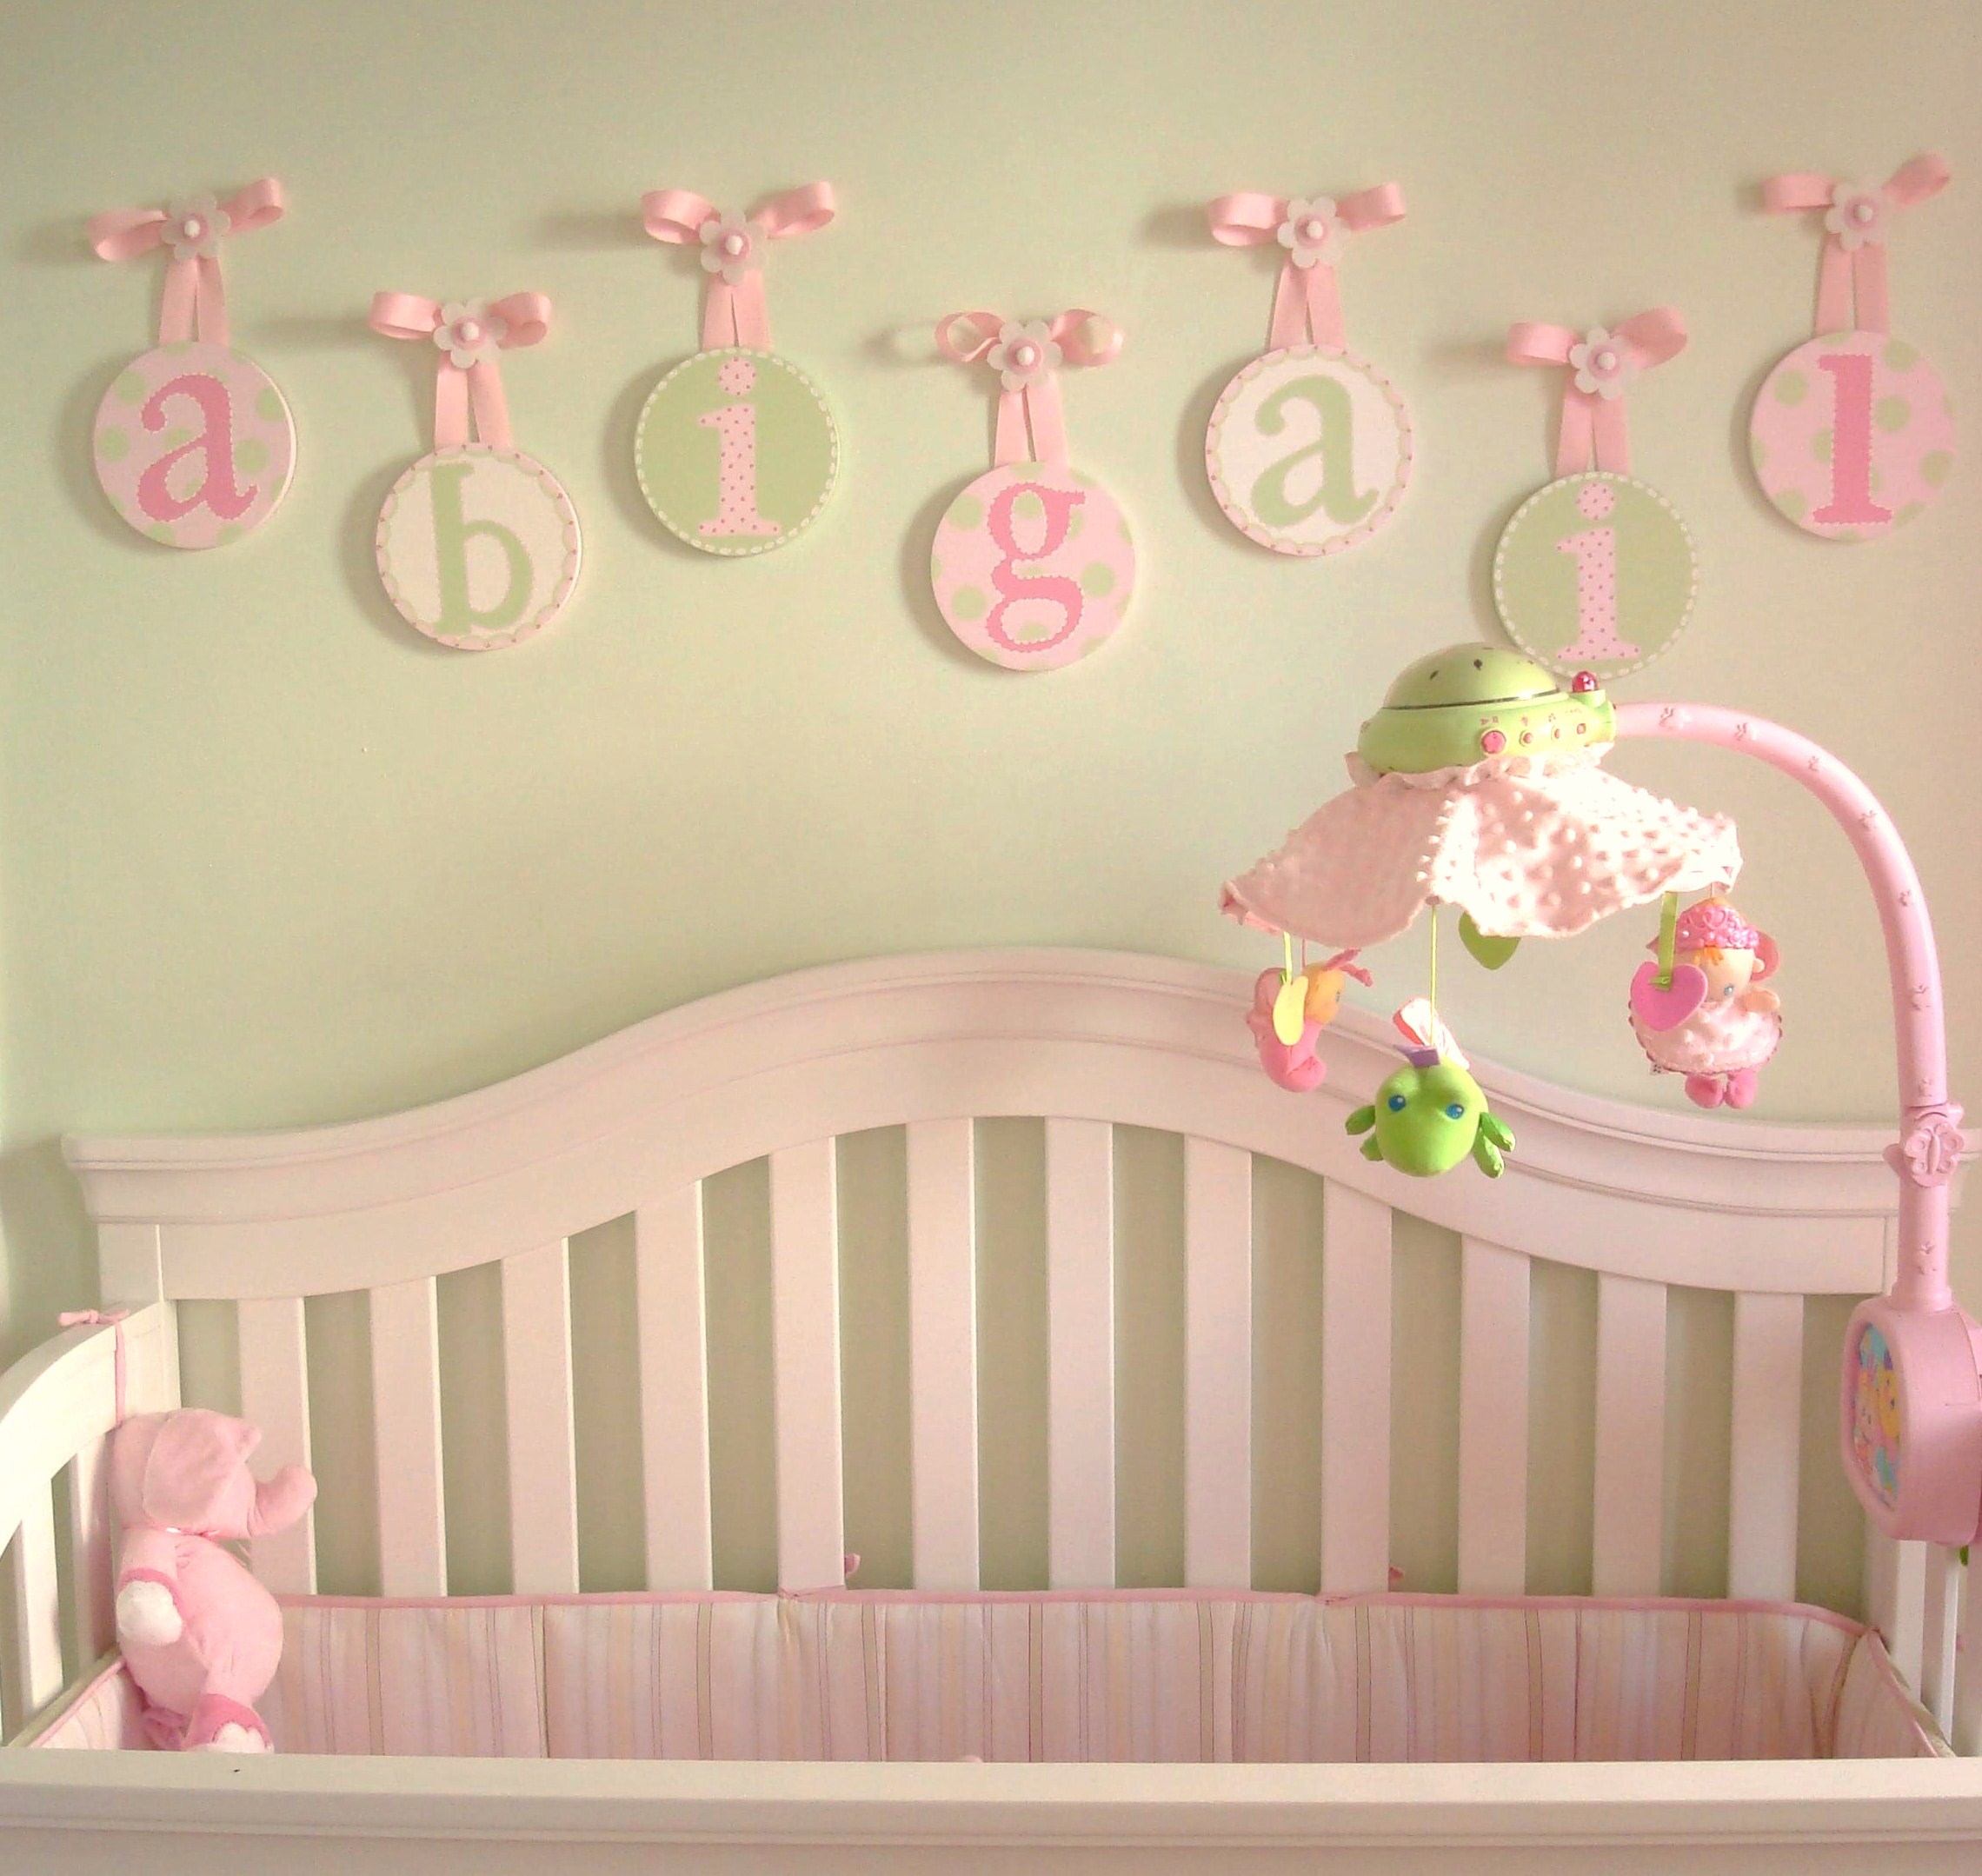 Hanging letters for Baby decoration wall